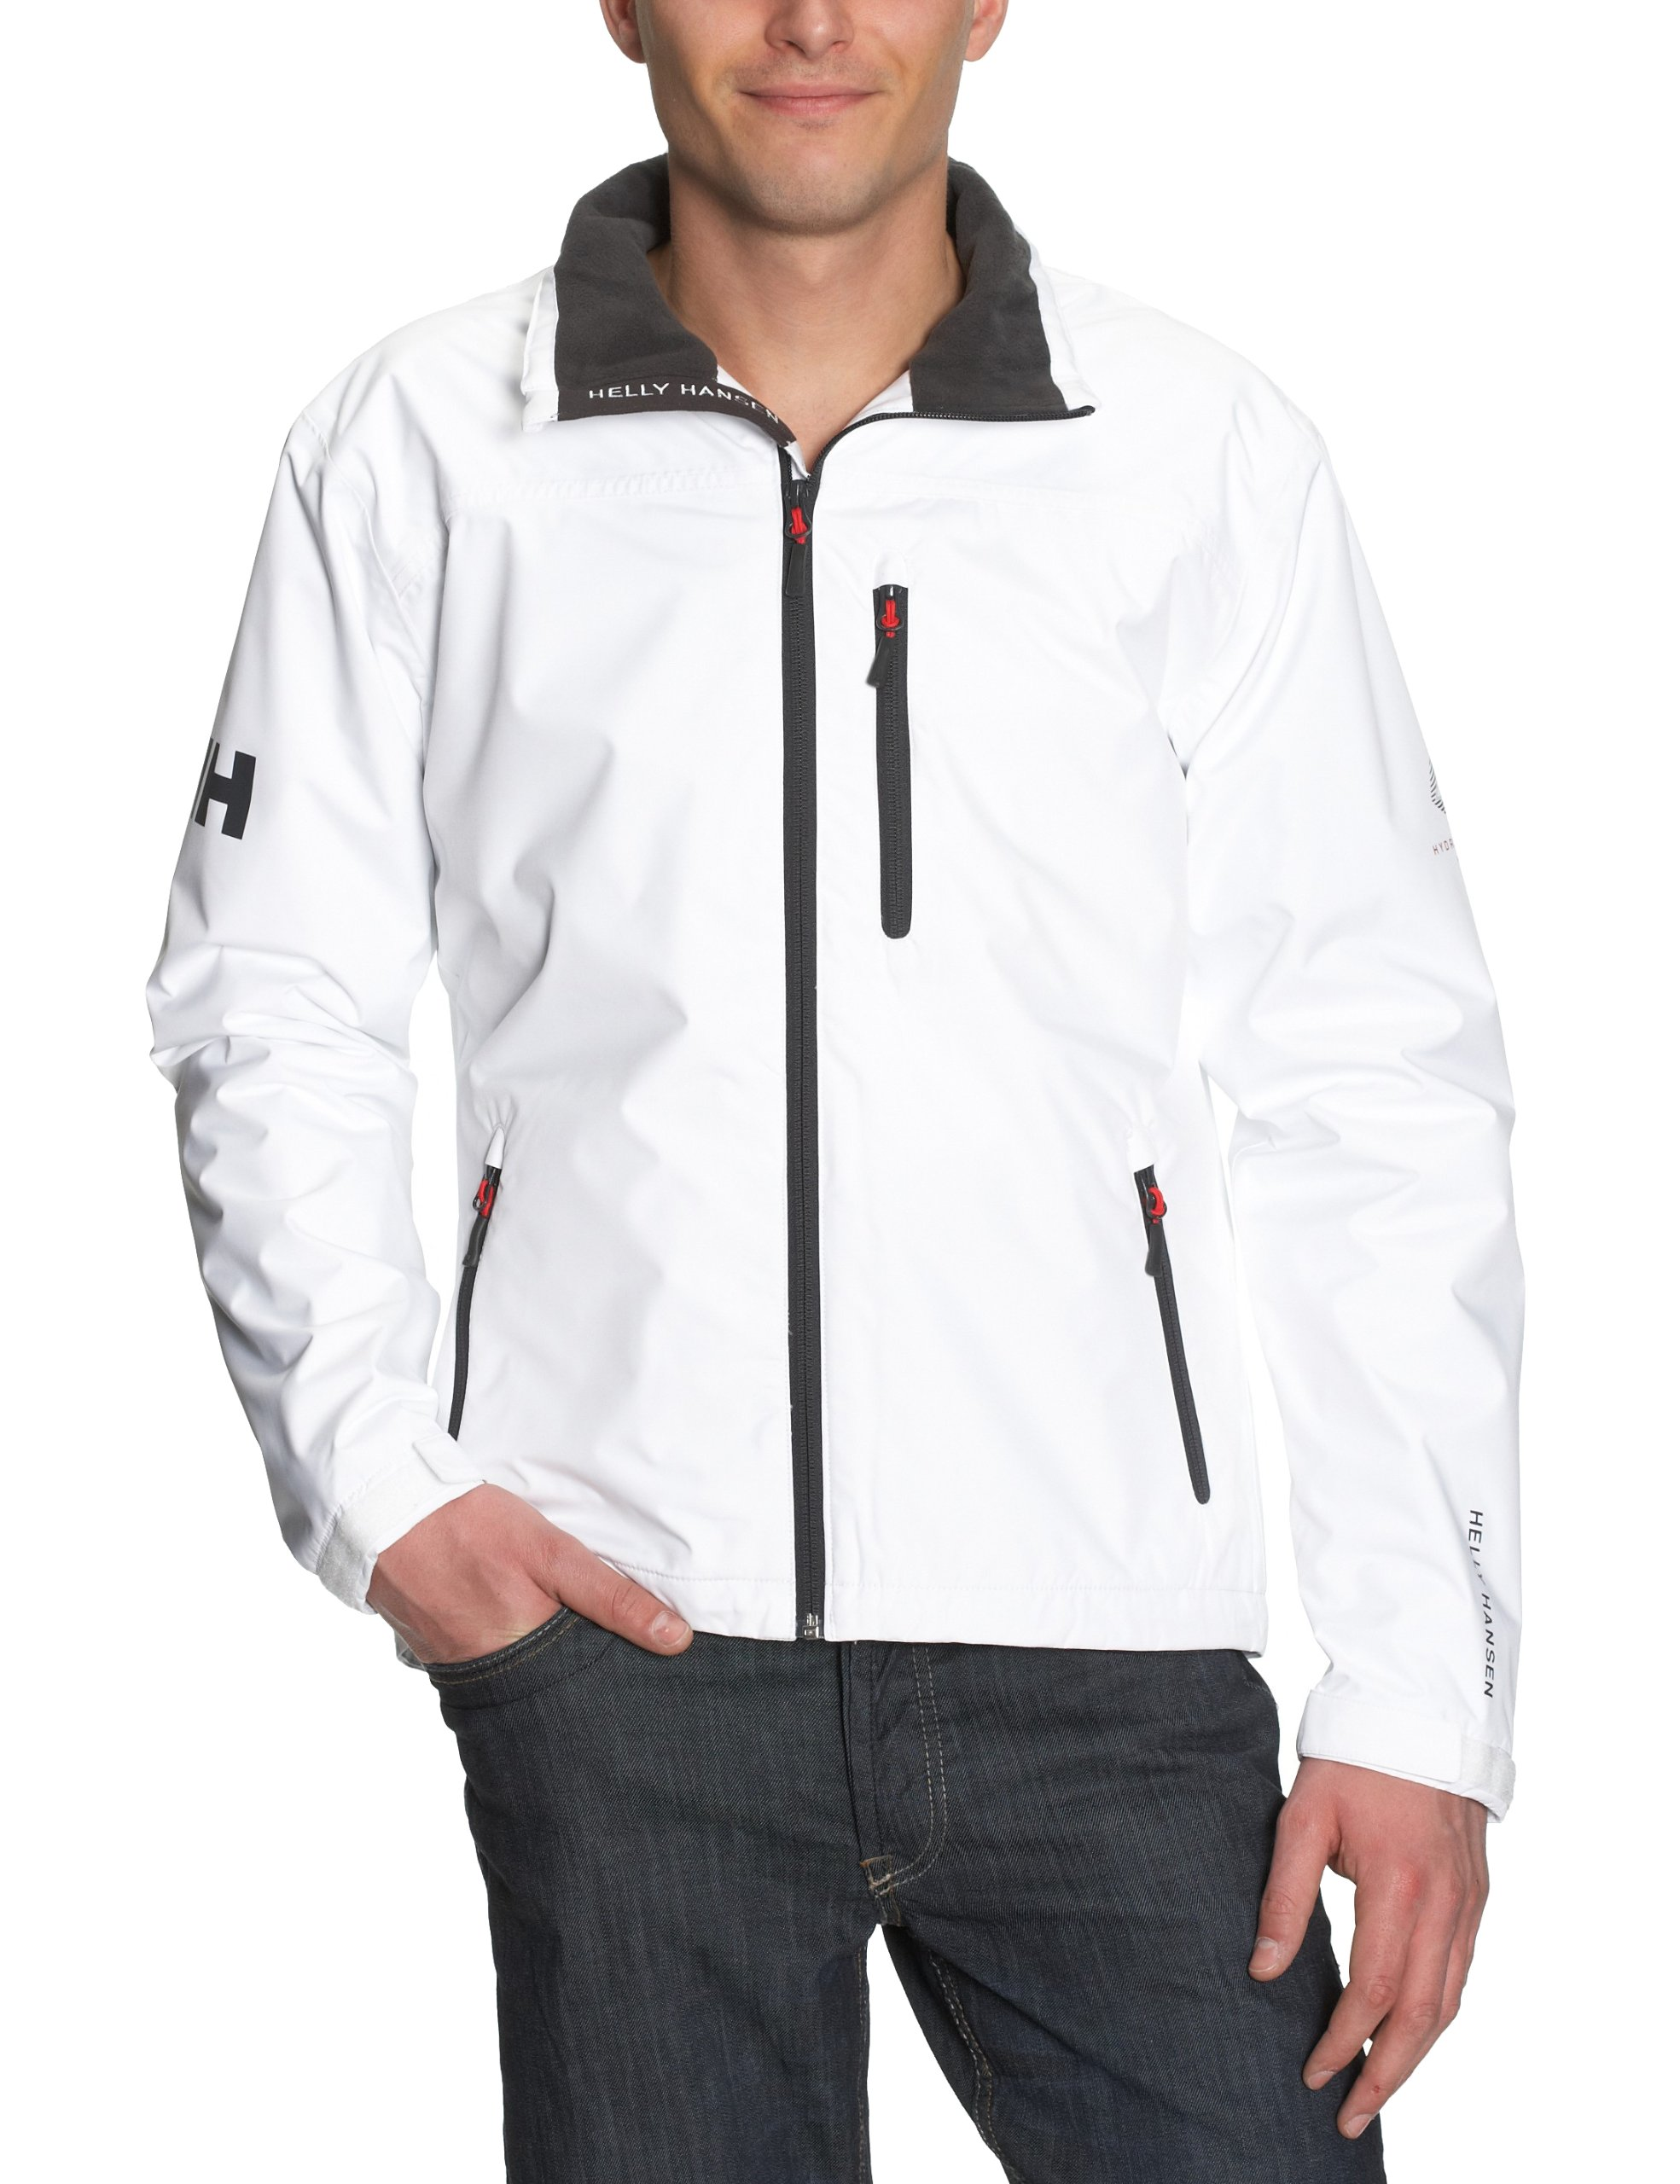 Helly Hansen Men's Crew Midlayer Waterproof Windproof Breathable Sailing Rain Coat Jacket, 001 Bright White, 2X-Large